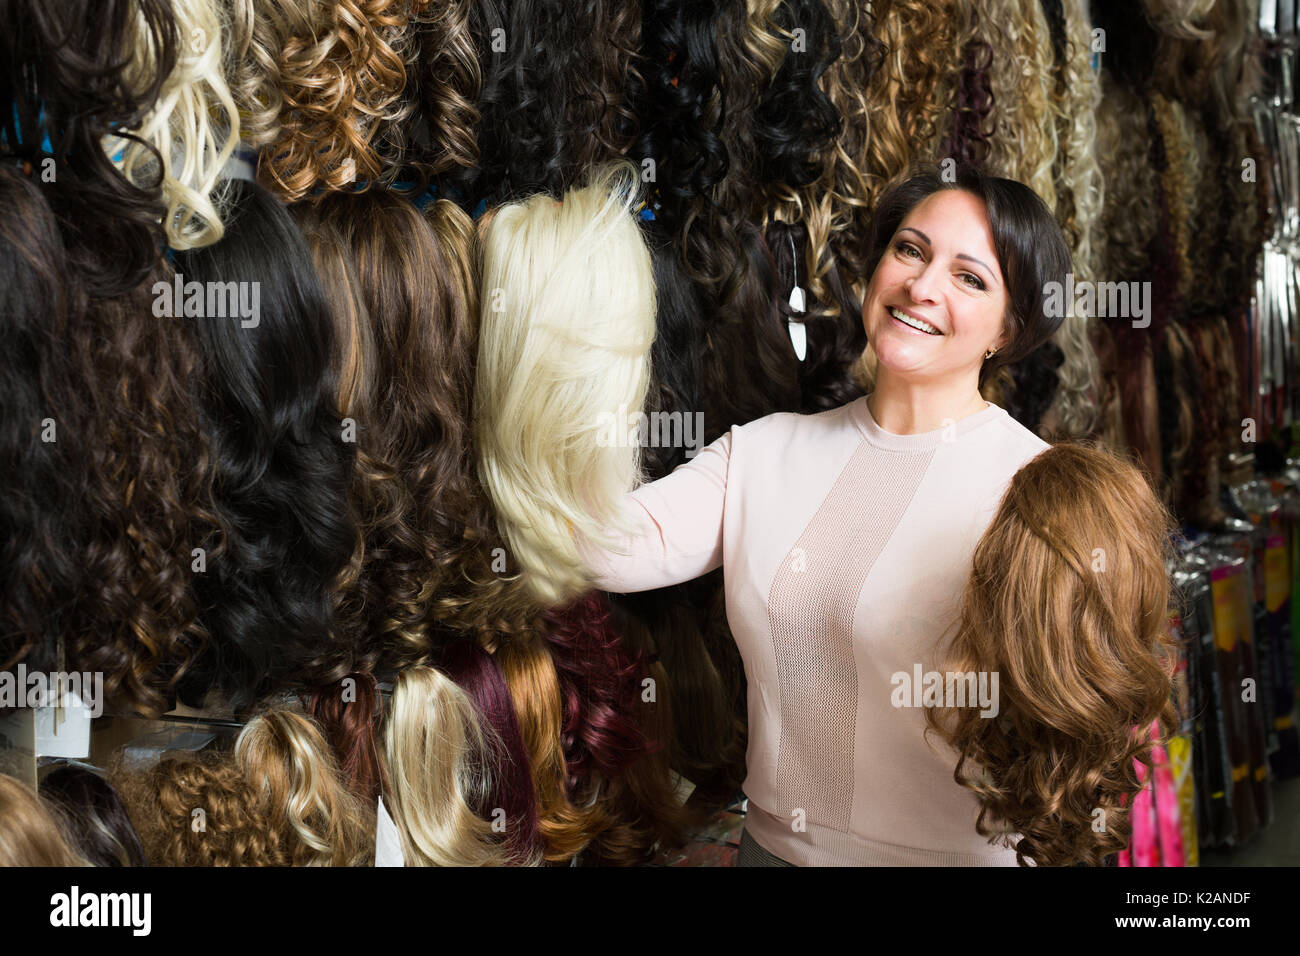 Hair extensions stock photos hair extensions stock images alamy portrait of happy woman looking at different color hair extensions in shop stock image pmusecretfo Gallery